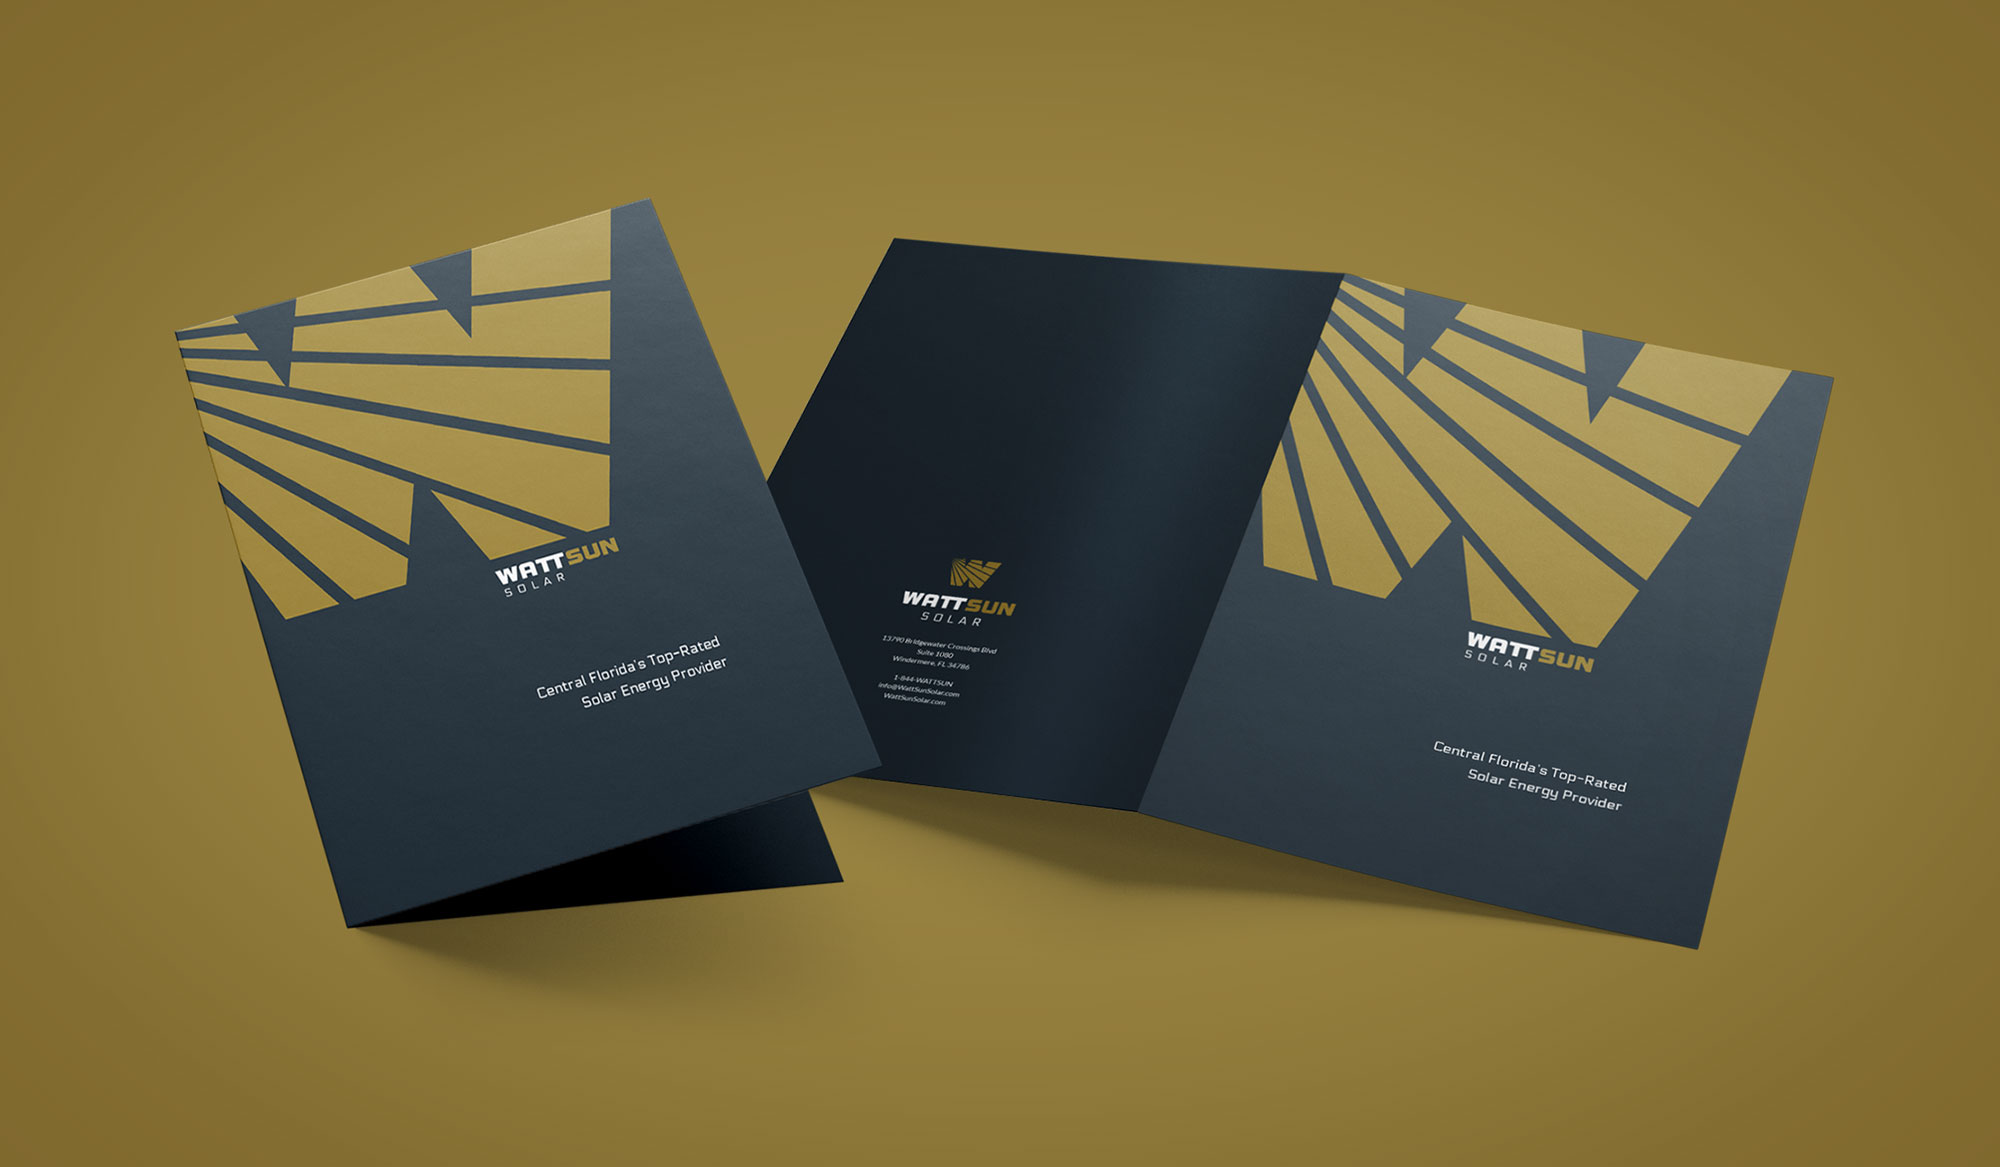 Wattsun corporate folder design